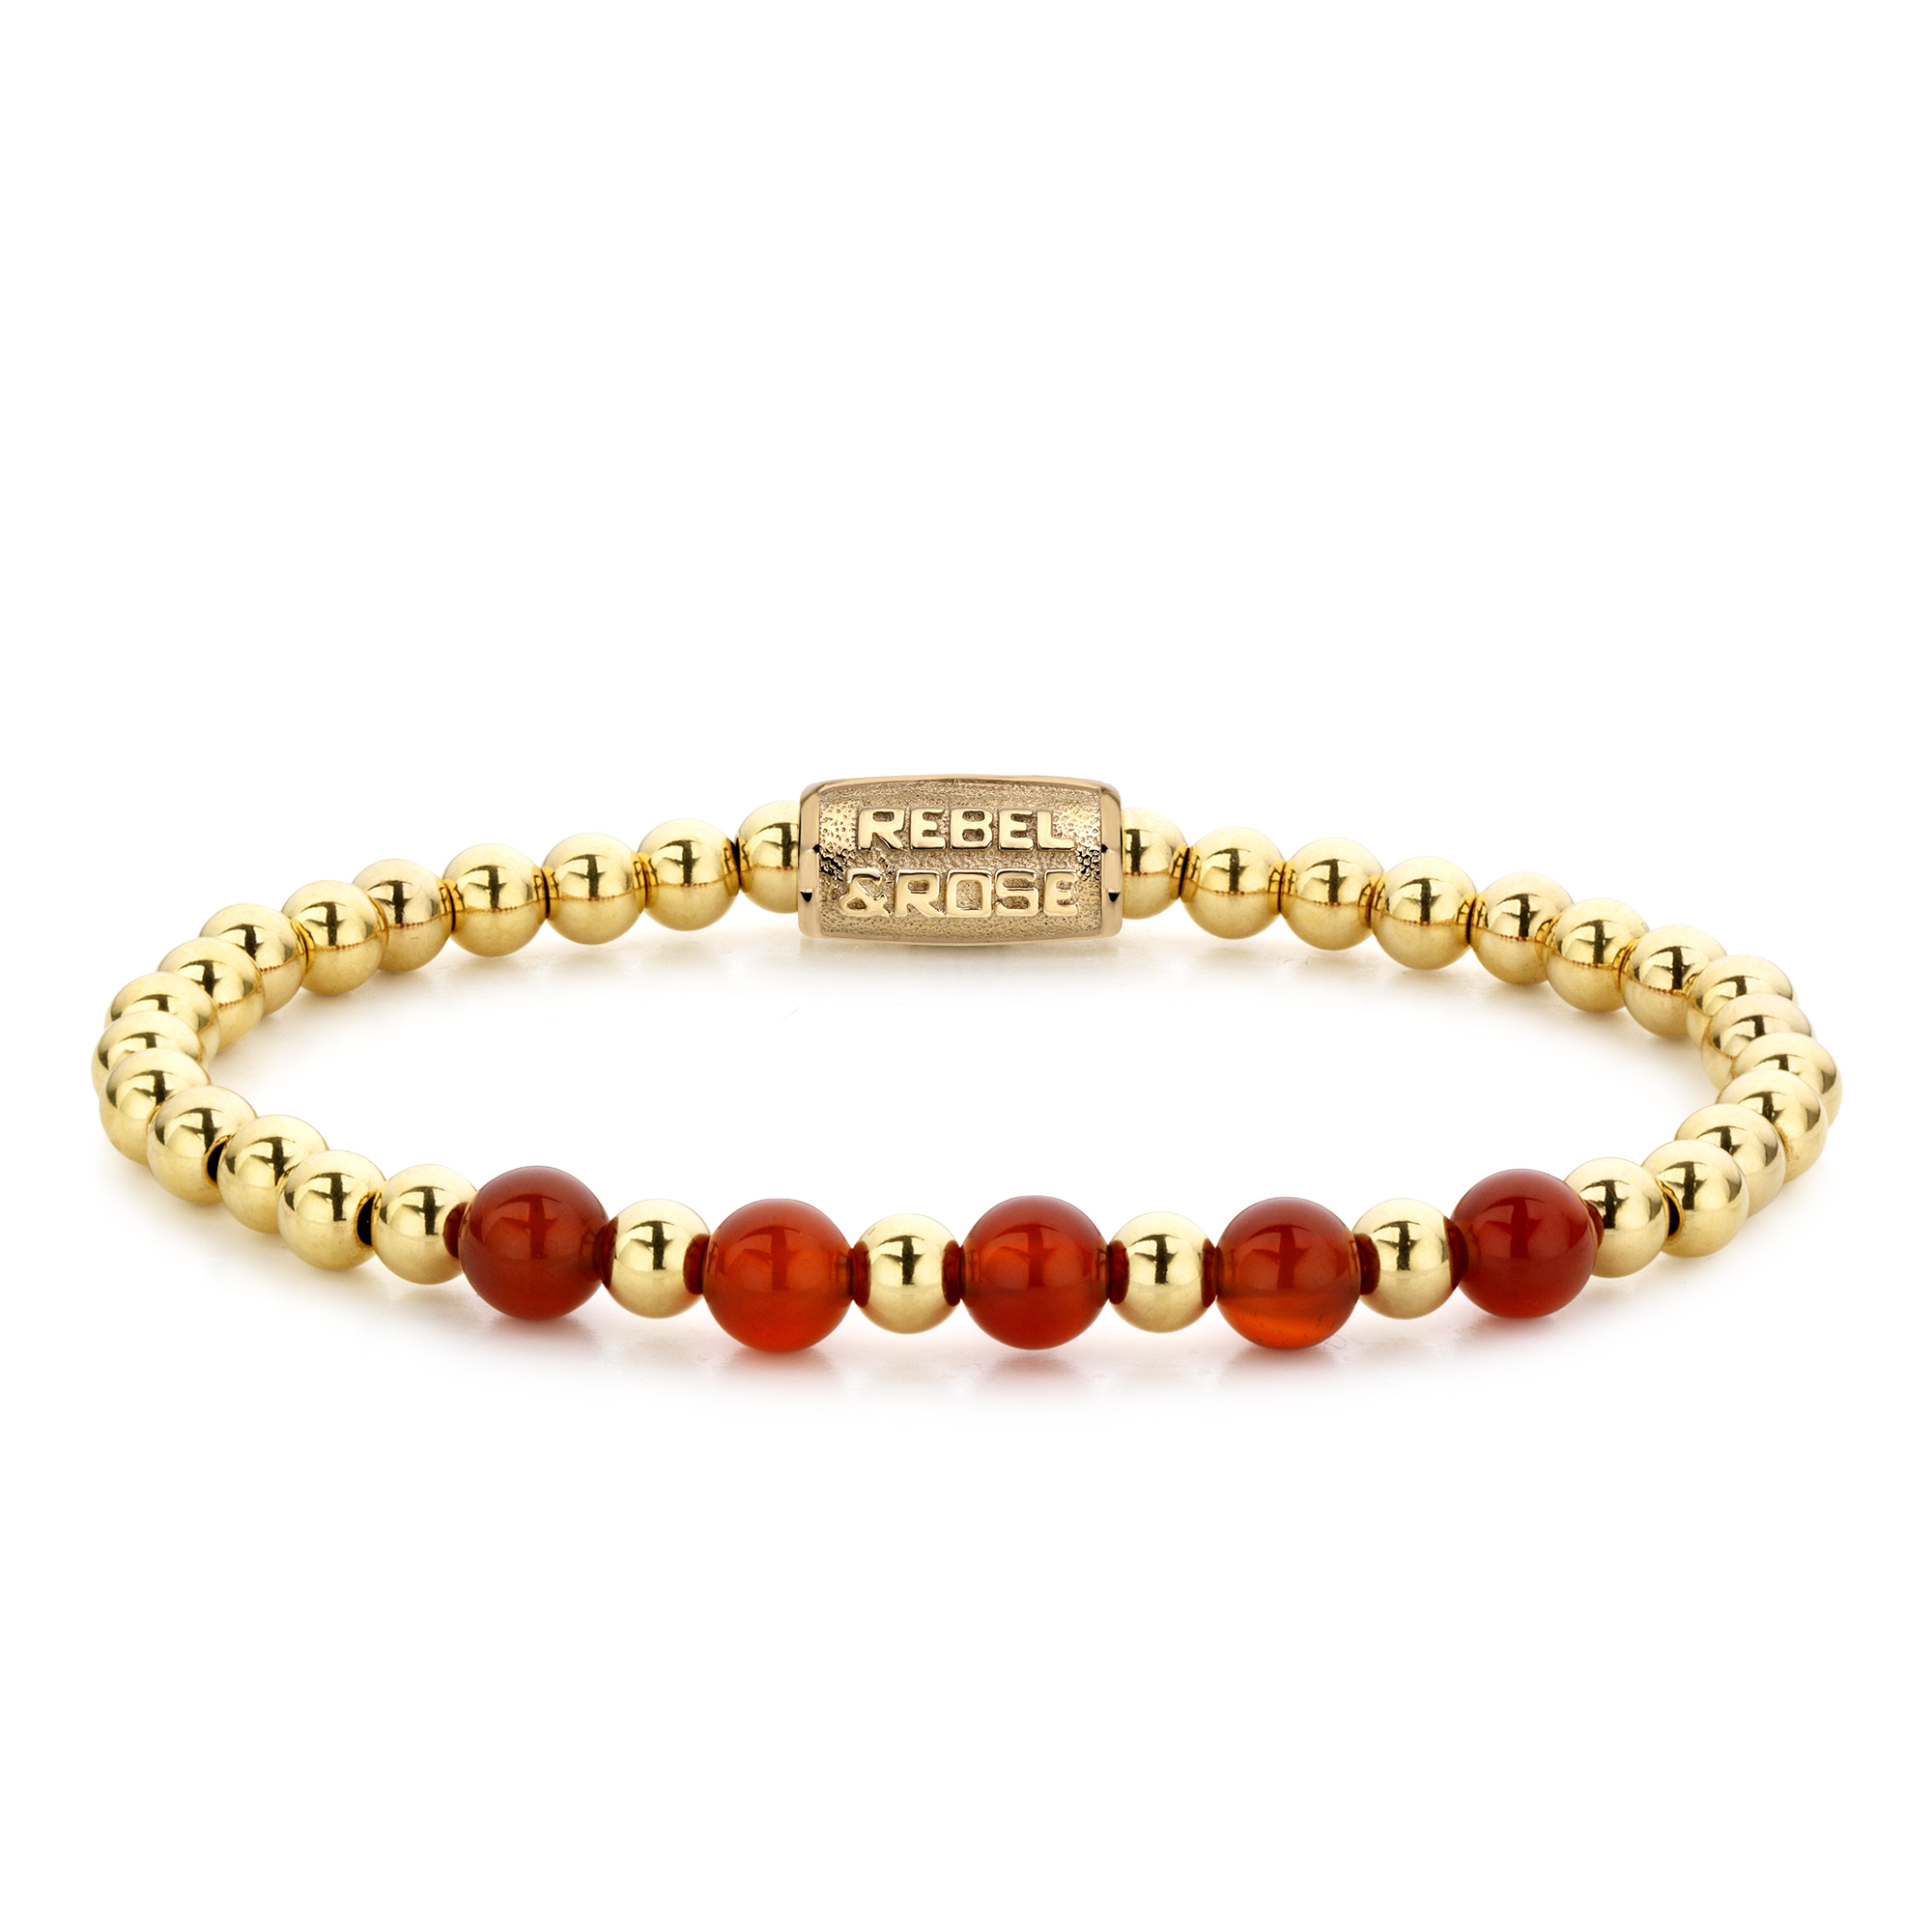 Rebel and Rose RR 60064 G Rekarmband Beads Yellow Gold meets Amazing Grace goudkleurig rood 6 mm XS 15 cm